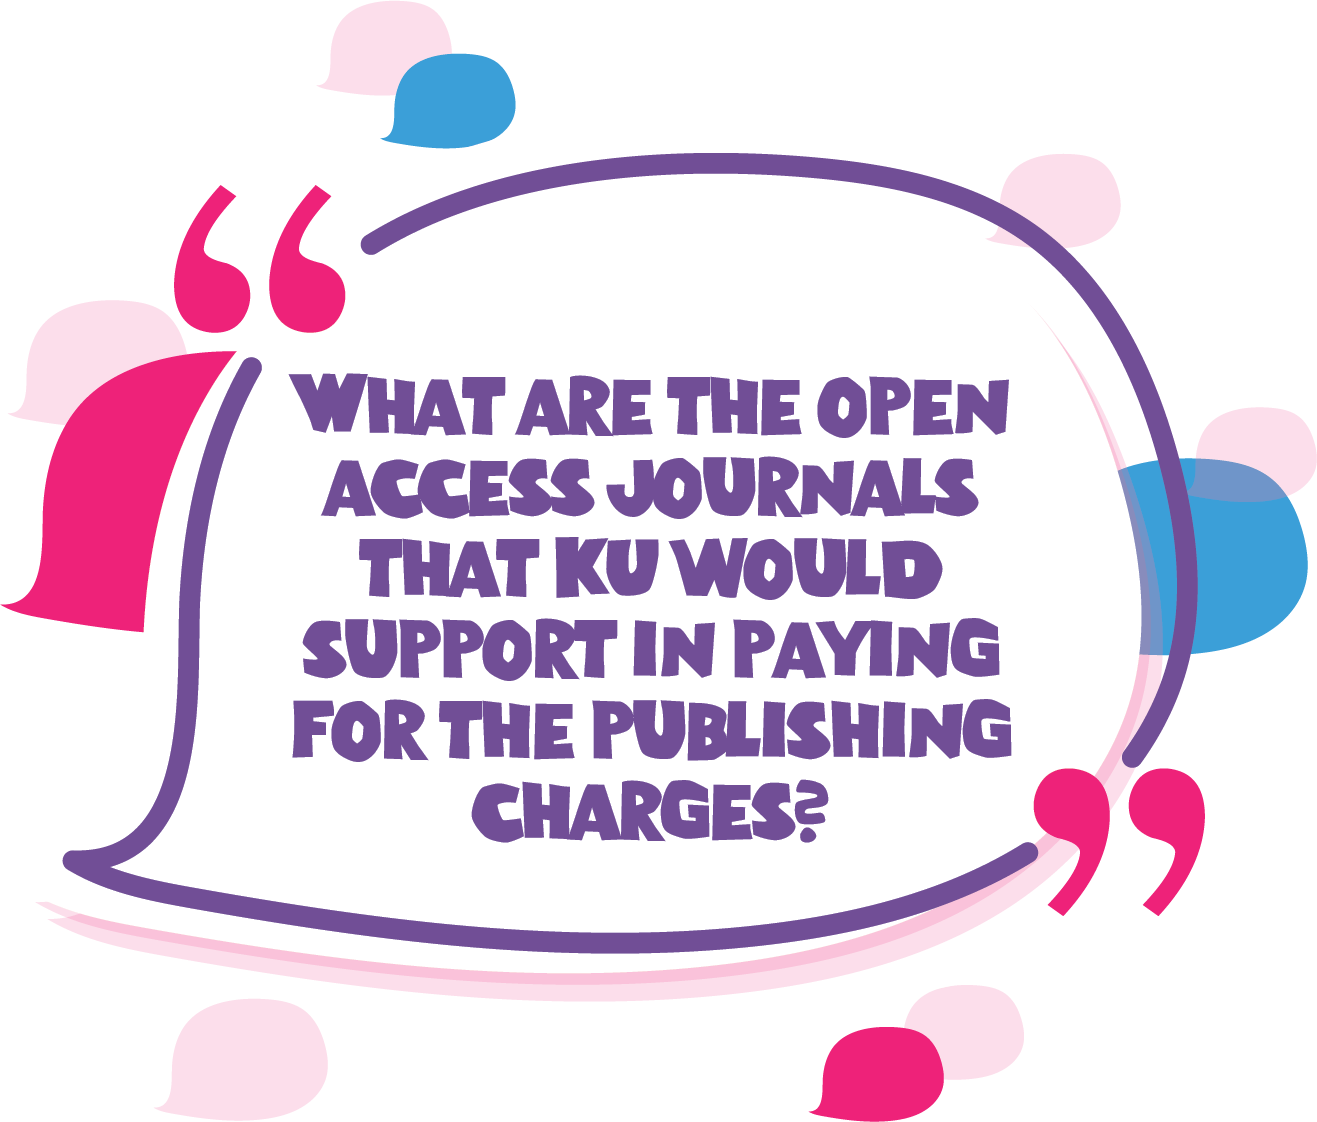 Speech balloon with the text 'What are the Open Access journals that KU would support in paying for the publishing charges?'